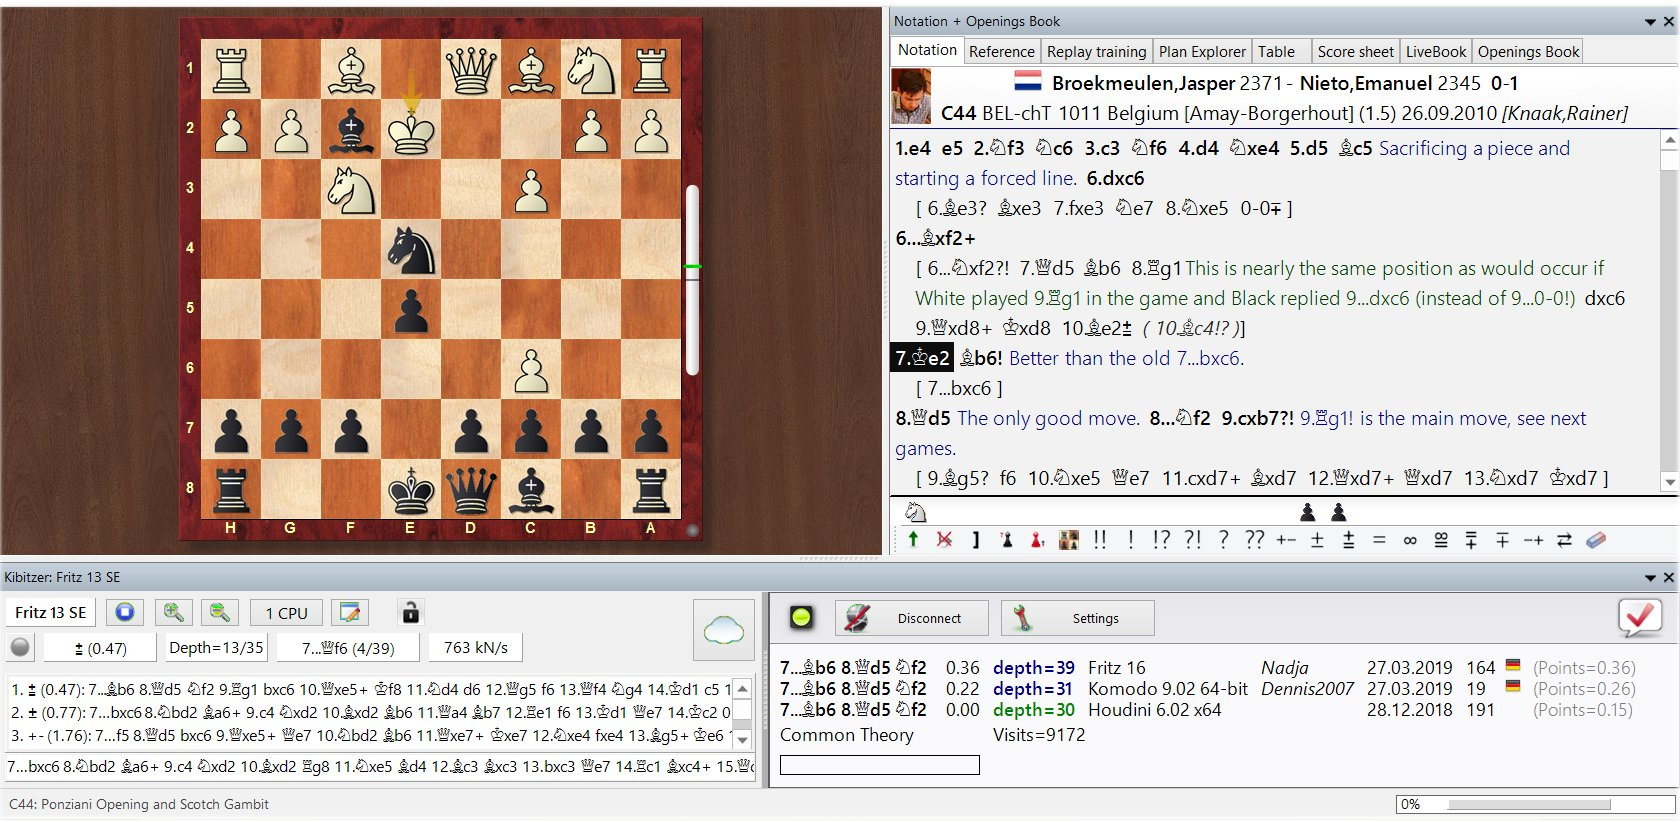 ChessBase Full Version + Database Crack Free Download